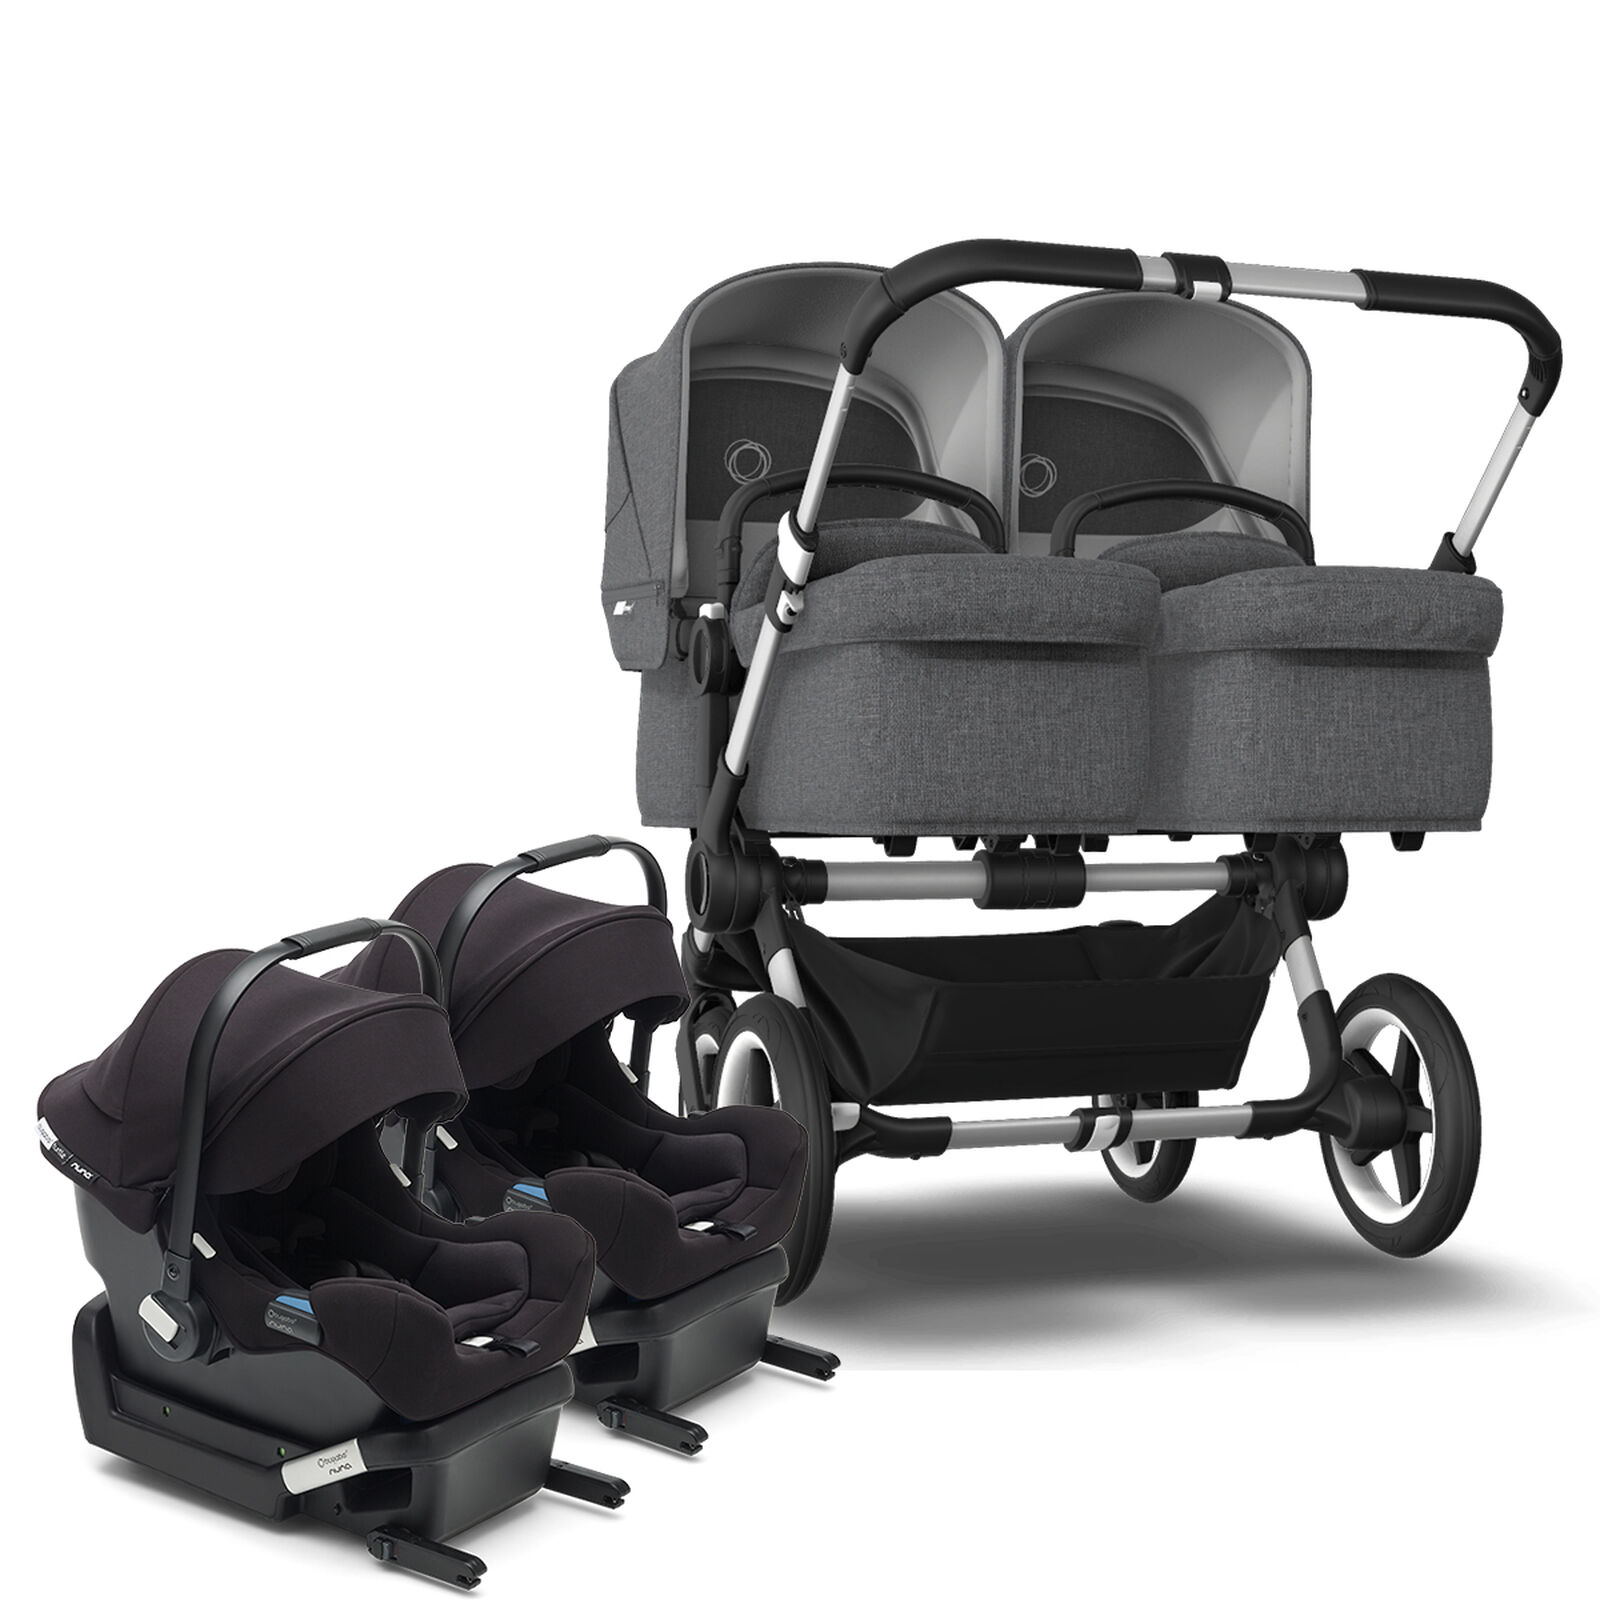 Bugaboo Donkey 3 Twin and Two Turtle One by Nuna car seats bundle